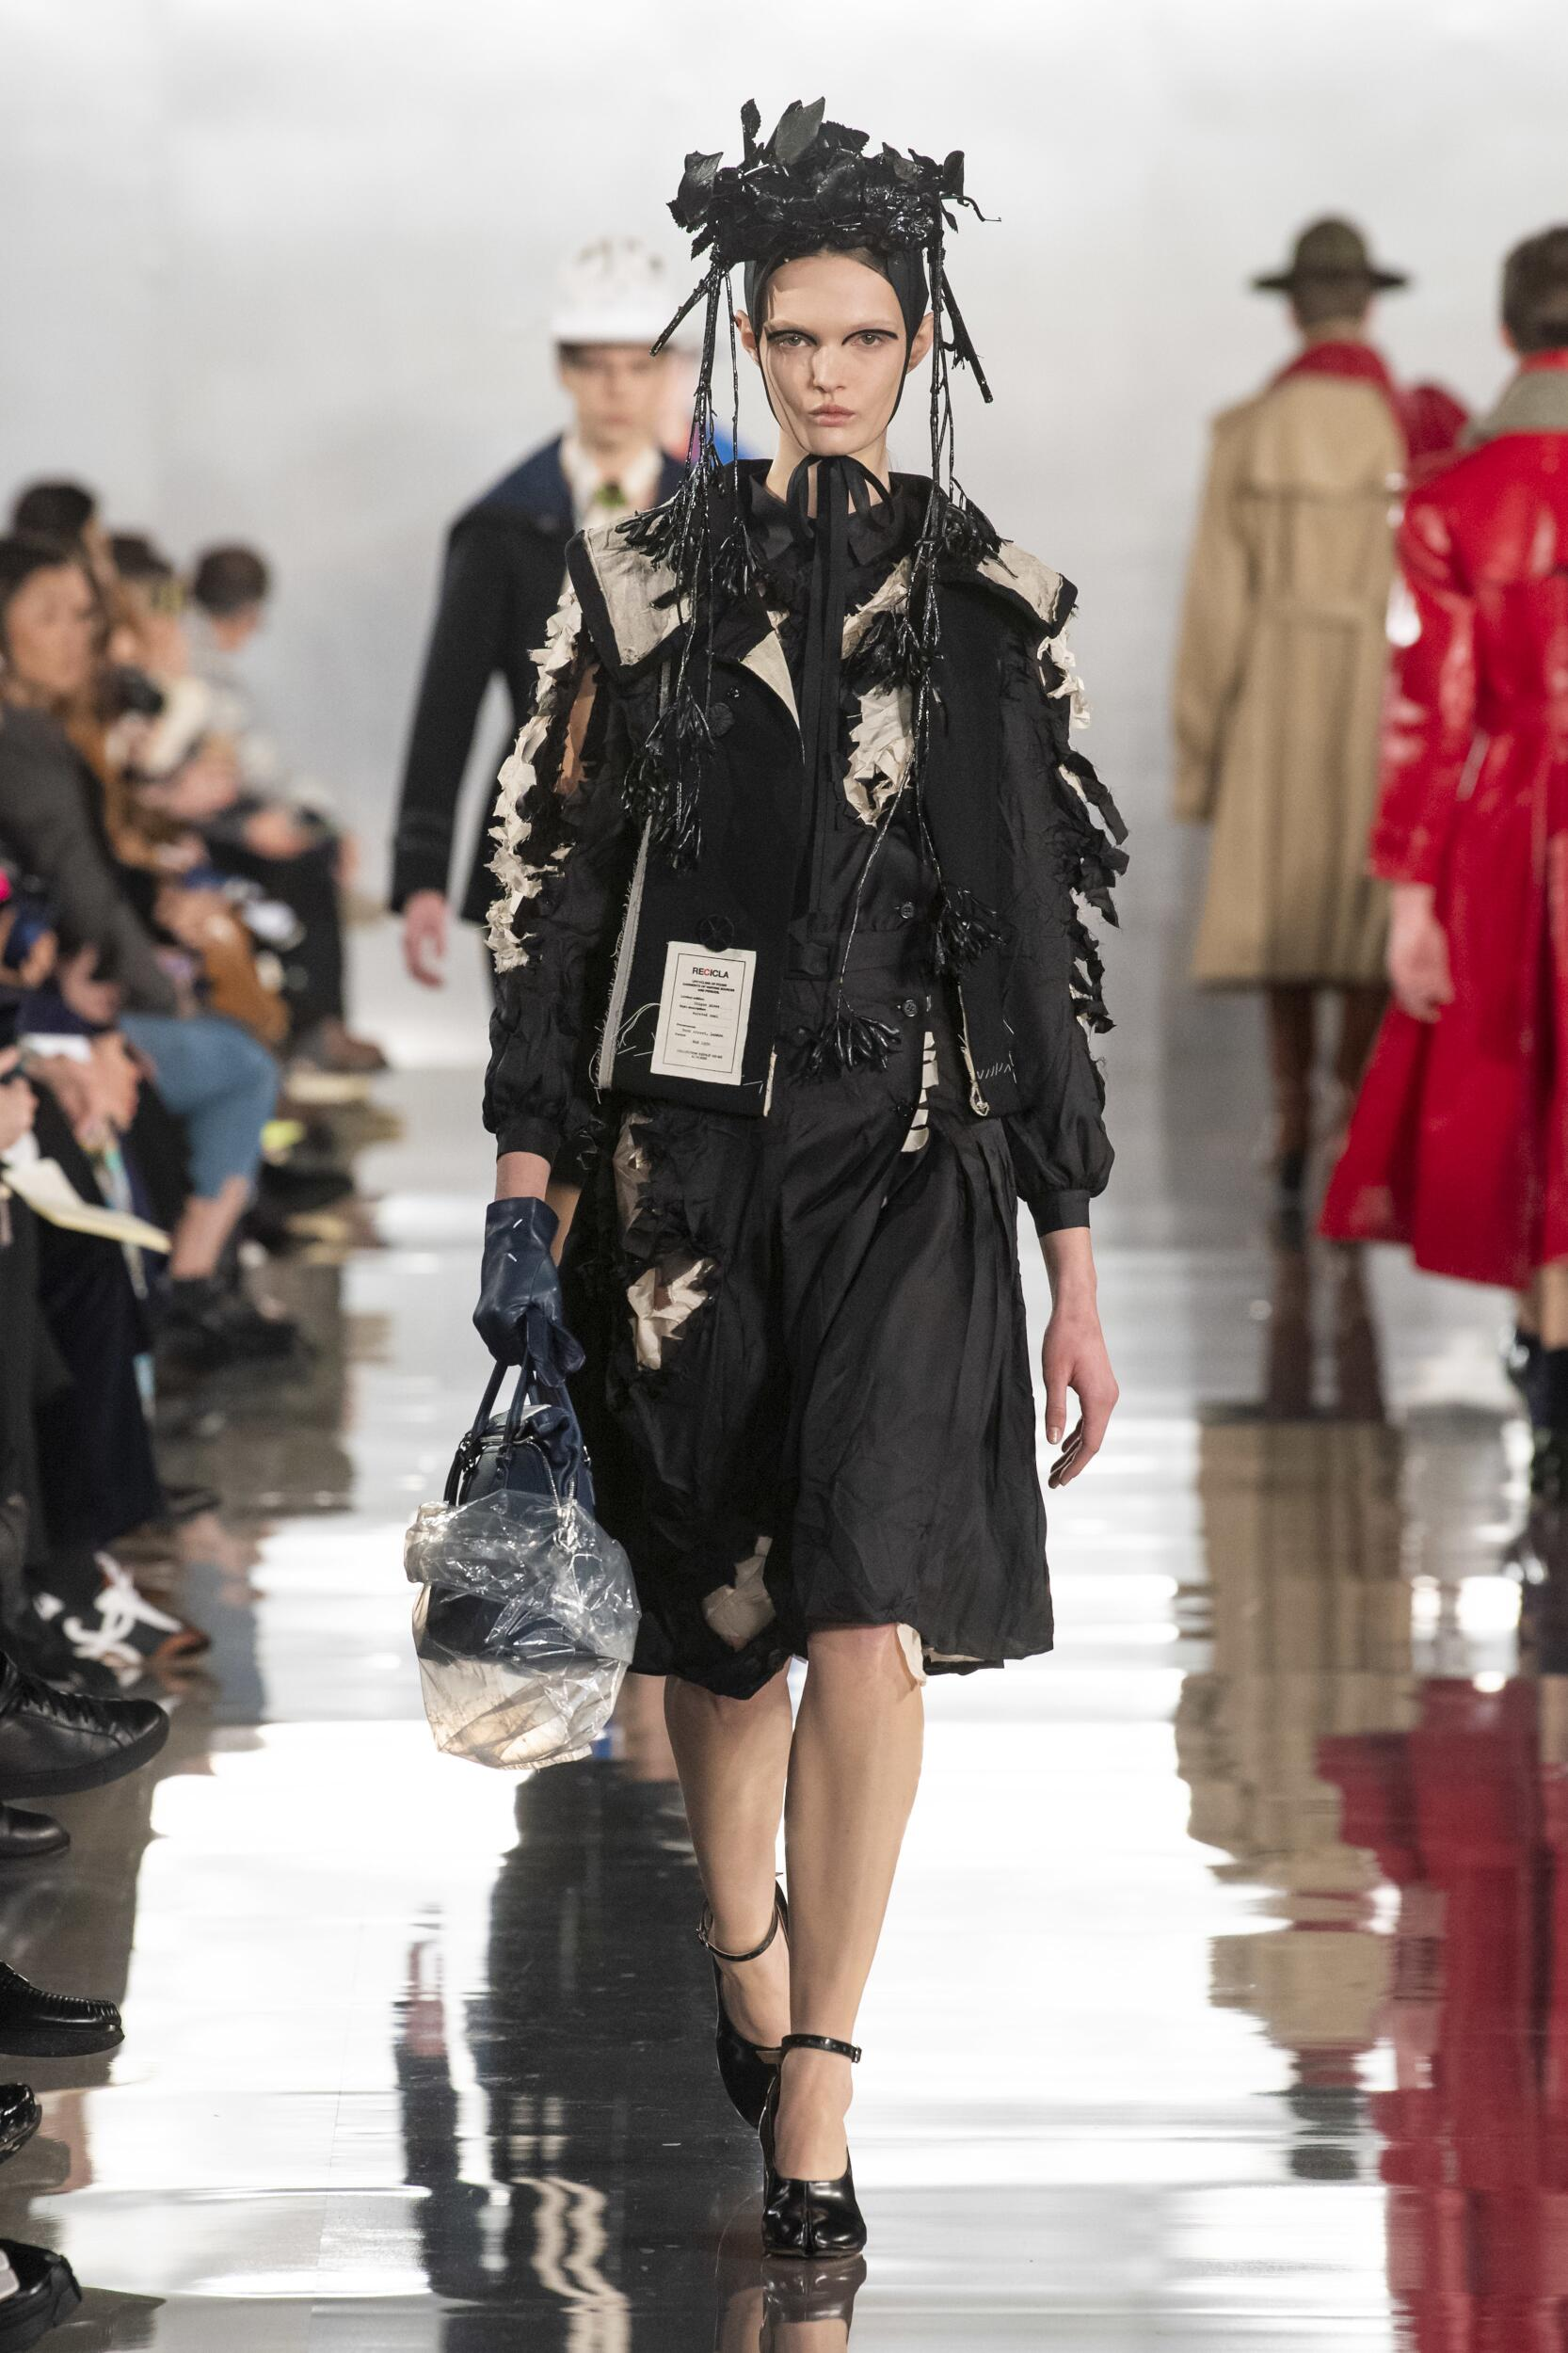 Catwalk Maison Margiela Woman Fashion Show Winter 2020